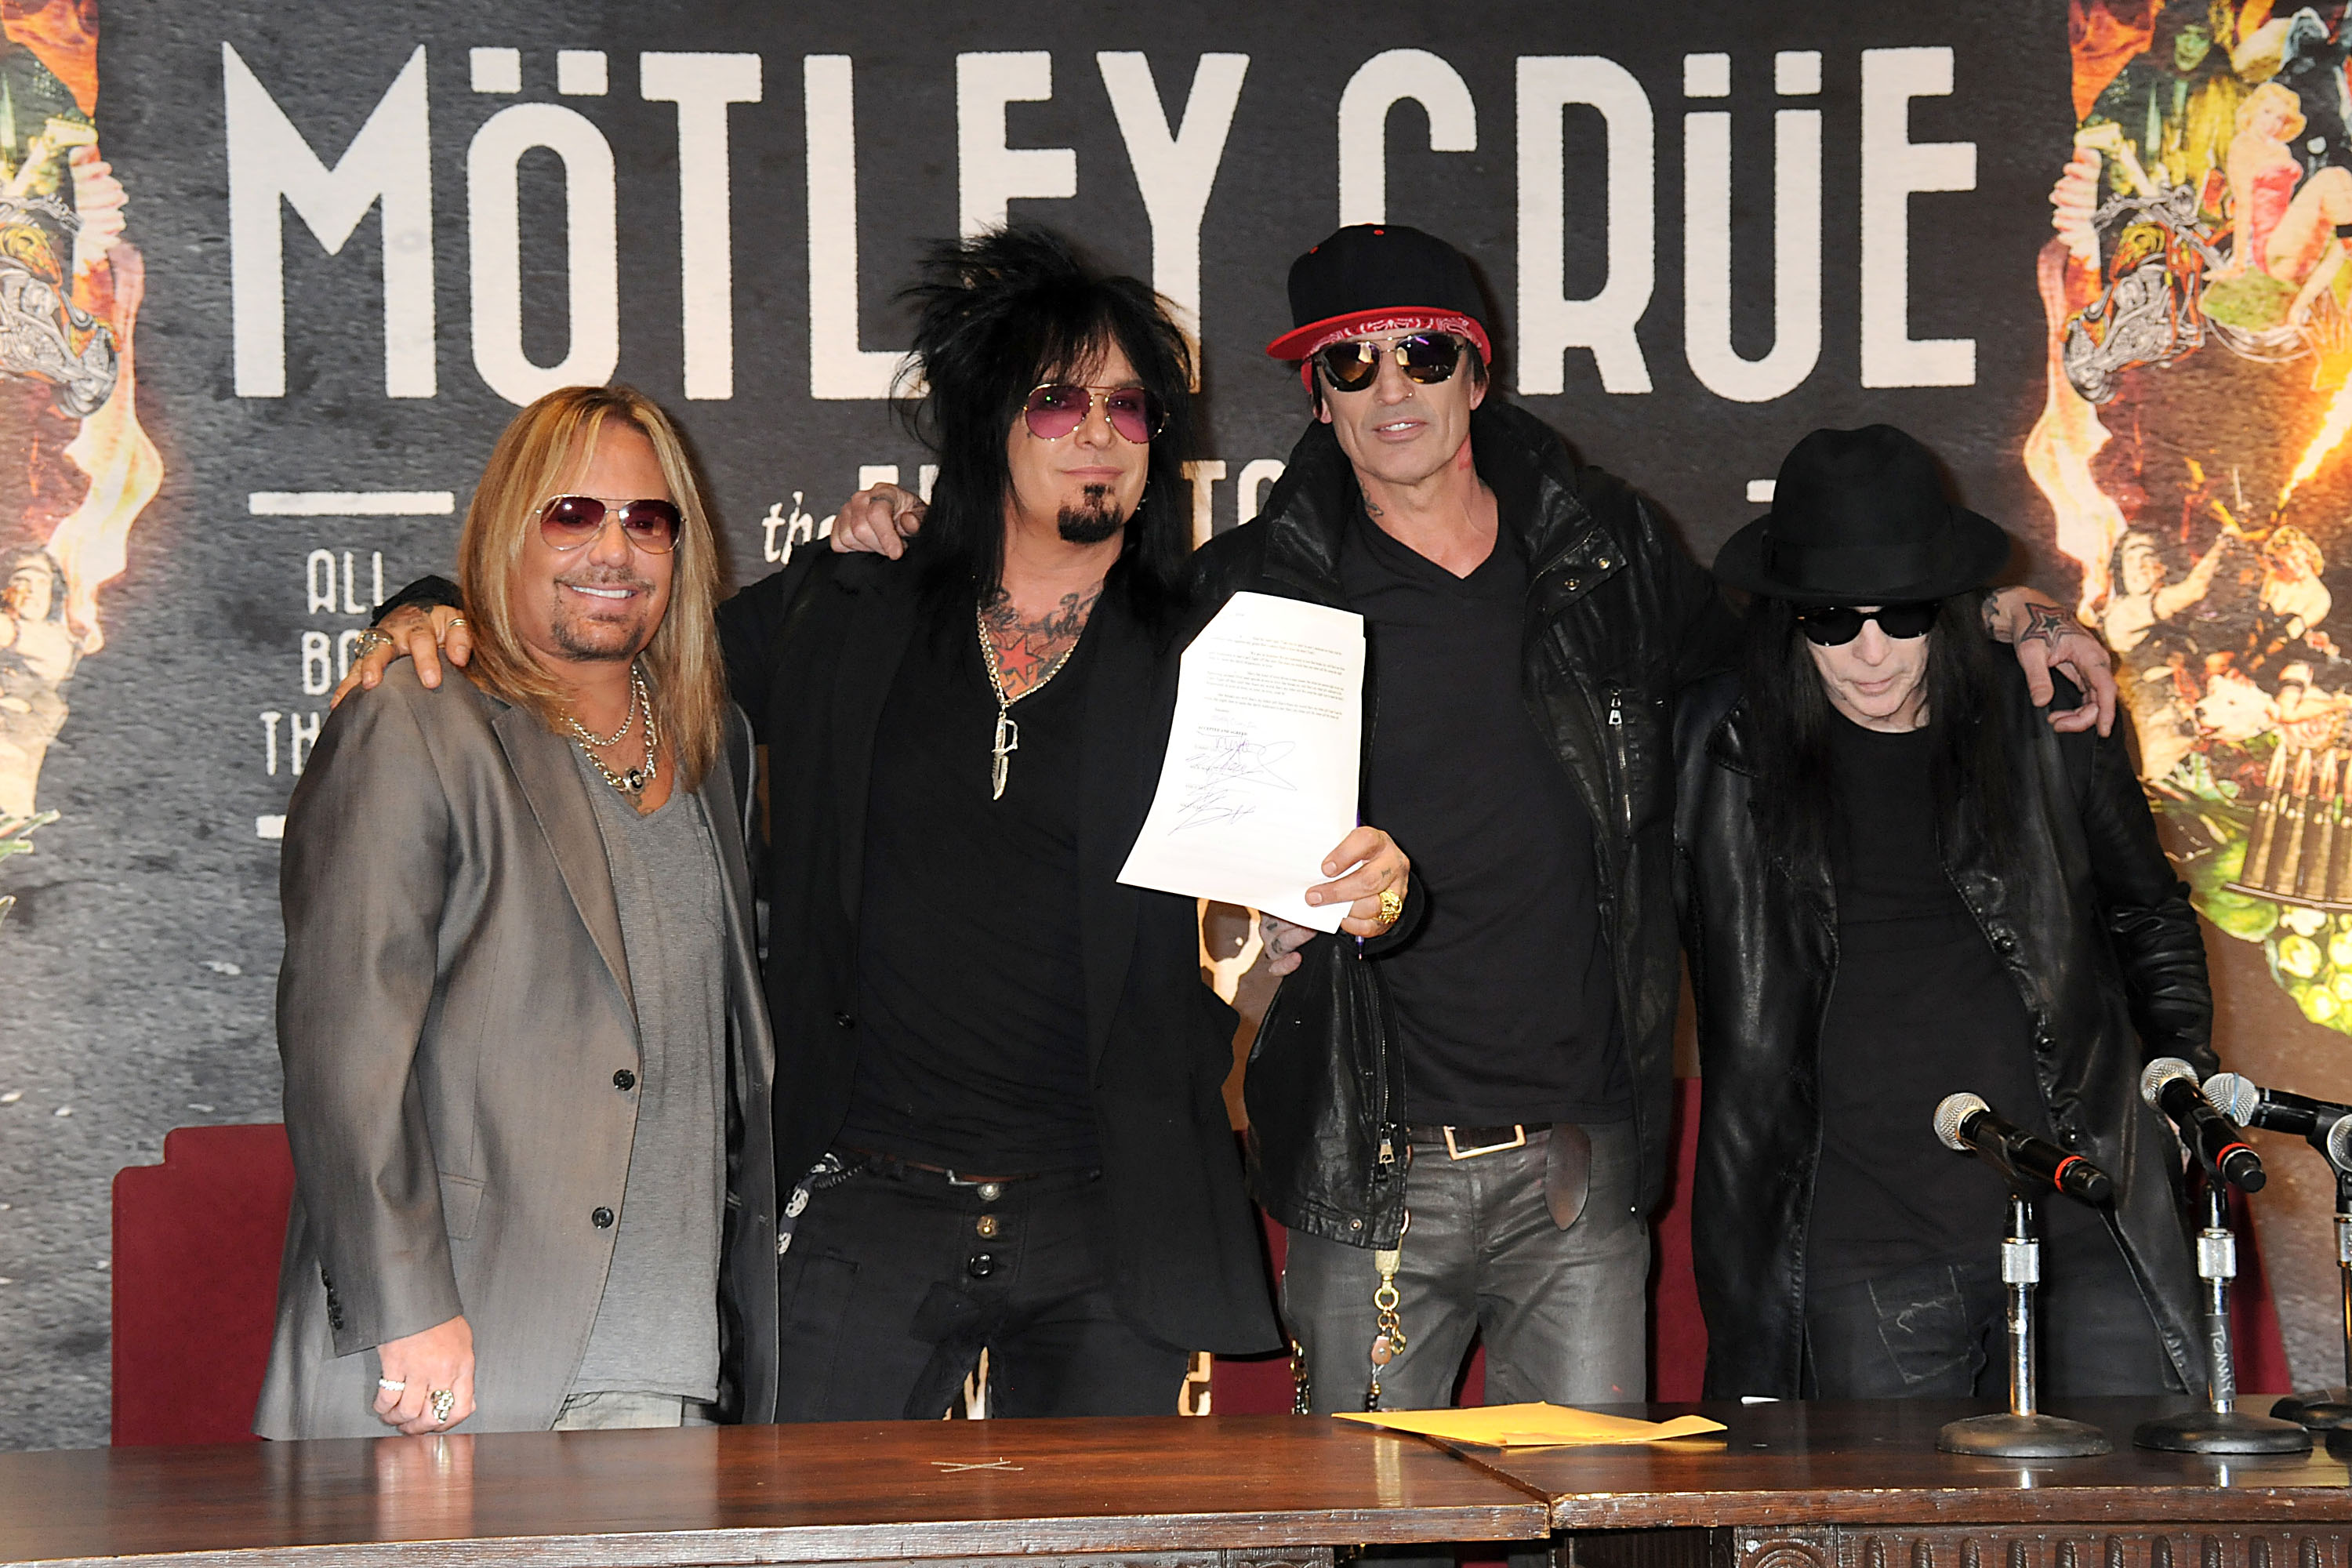 Video] Motley Crue movie 'The Dirt' premieres March 22nd on